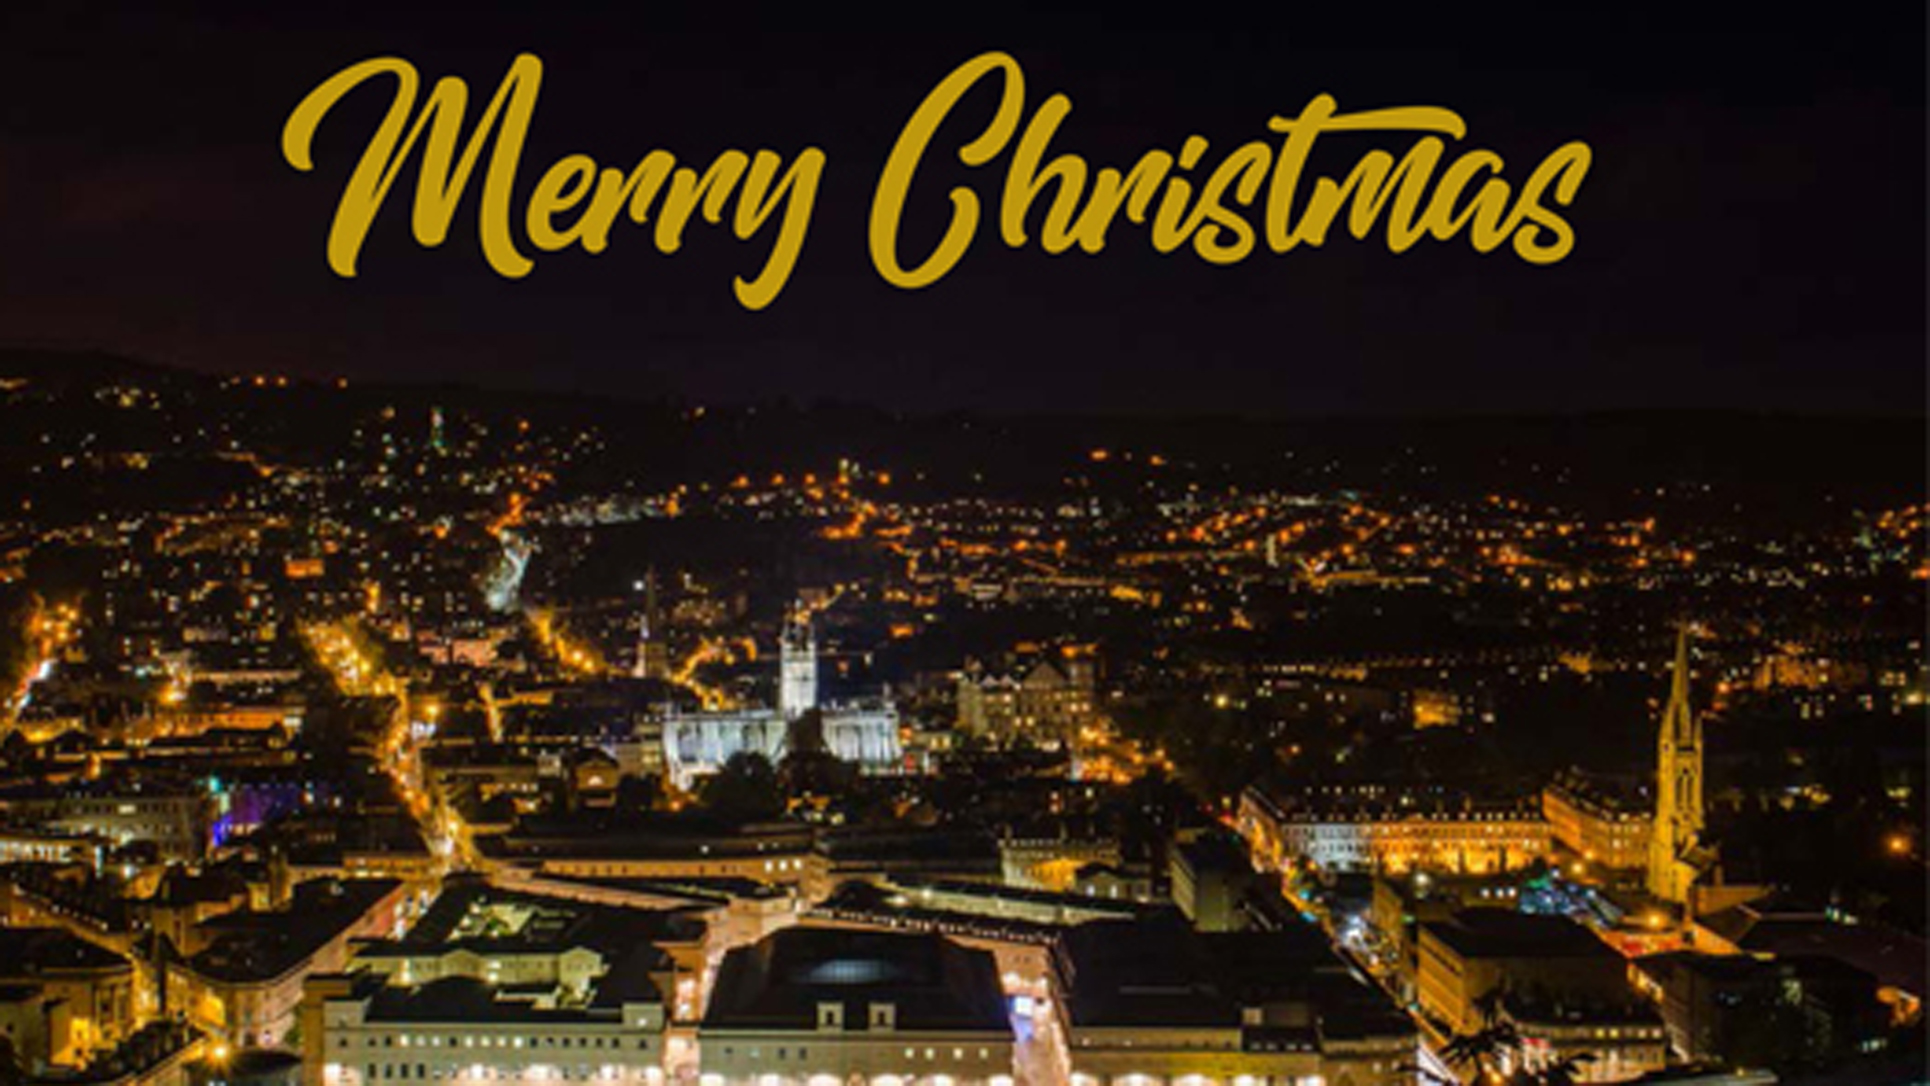 A night time shot of the city of Bath